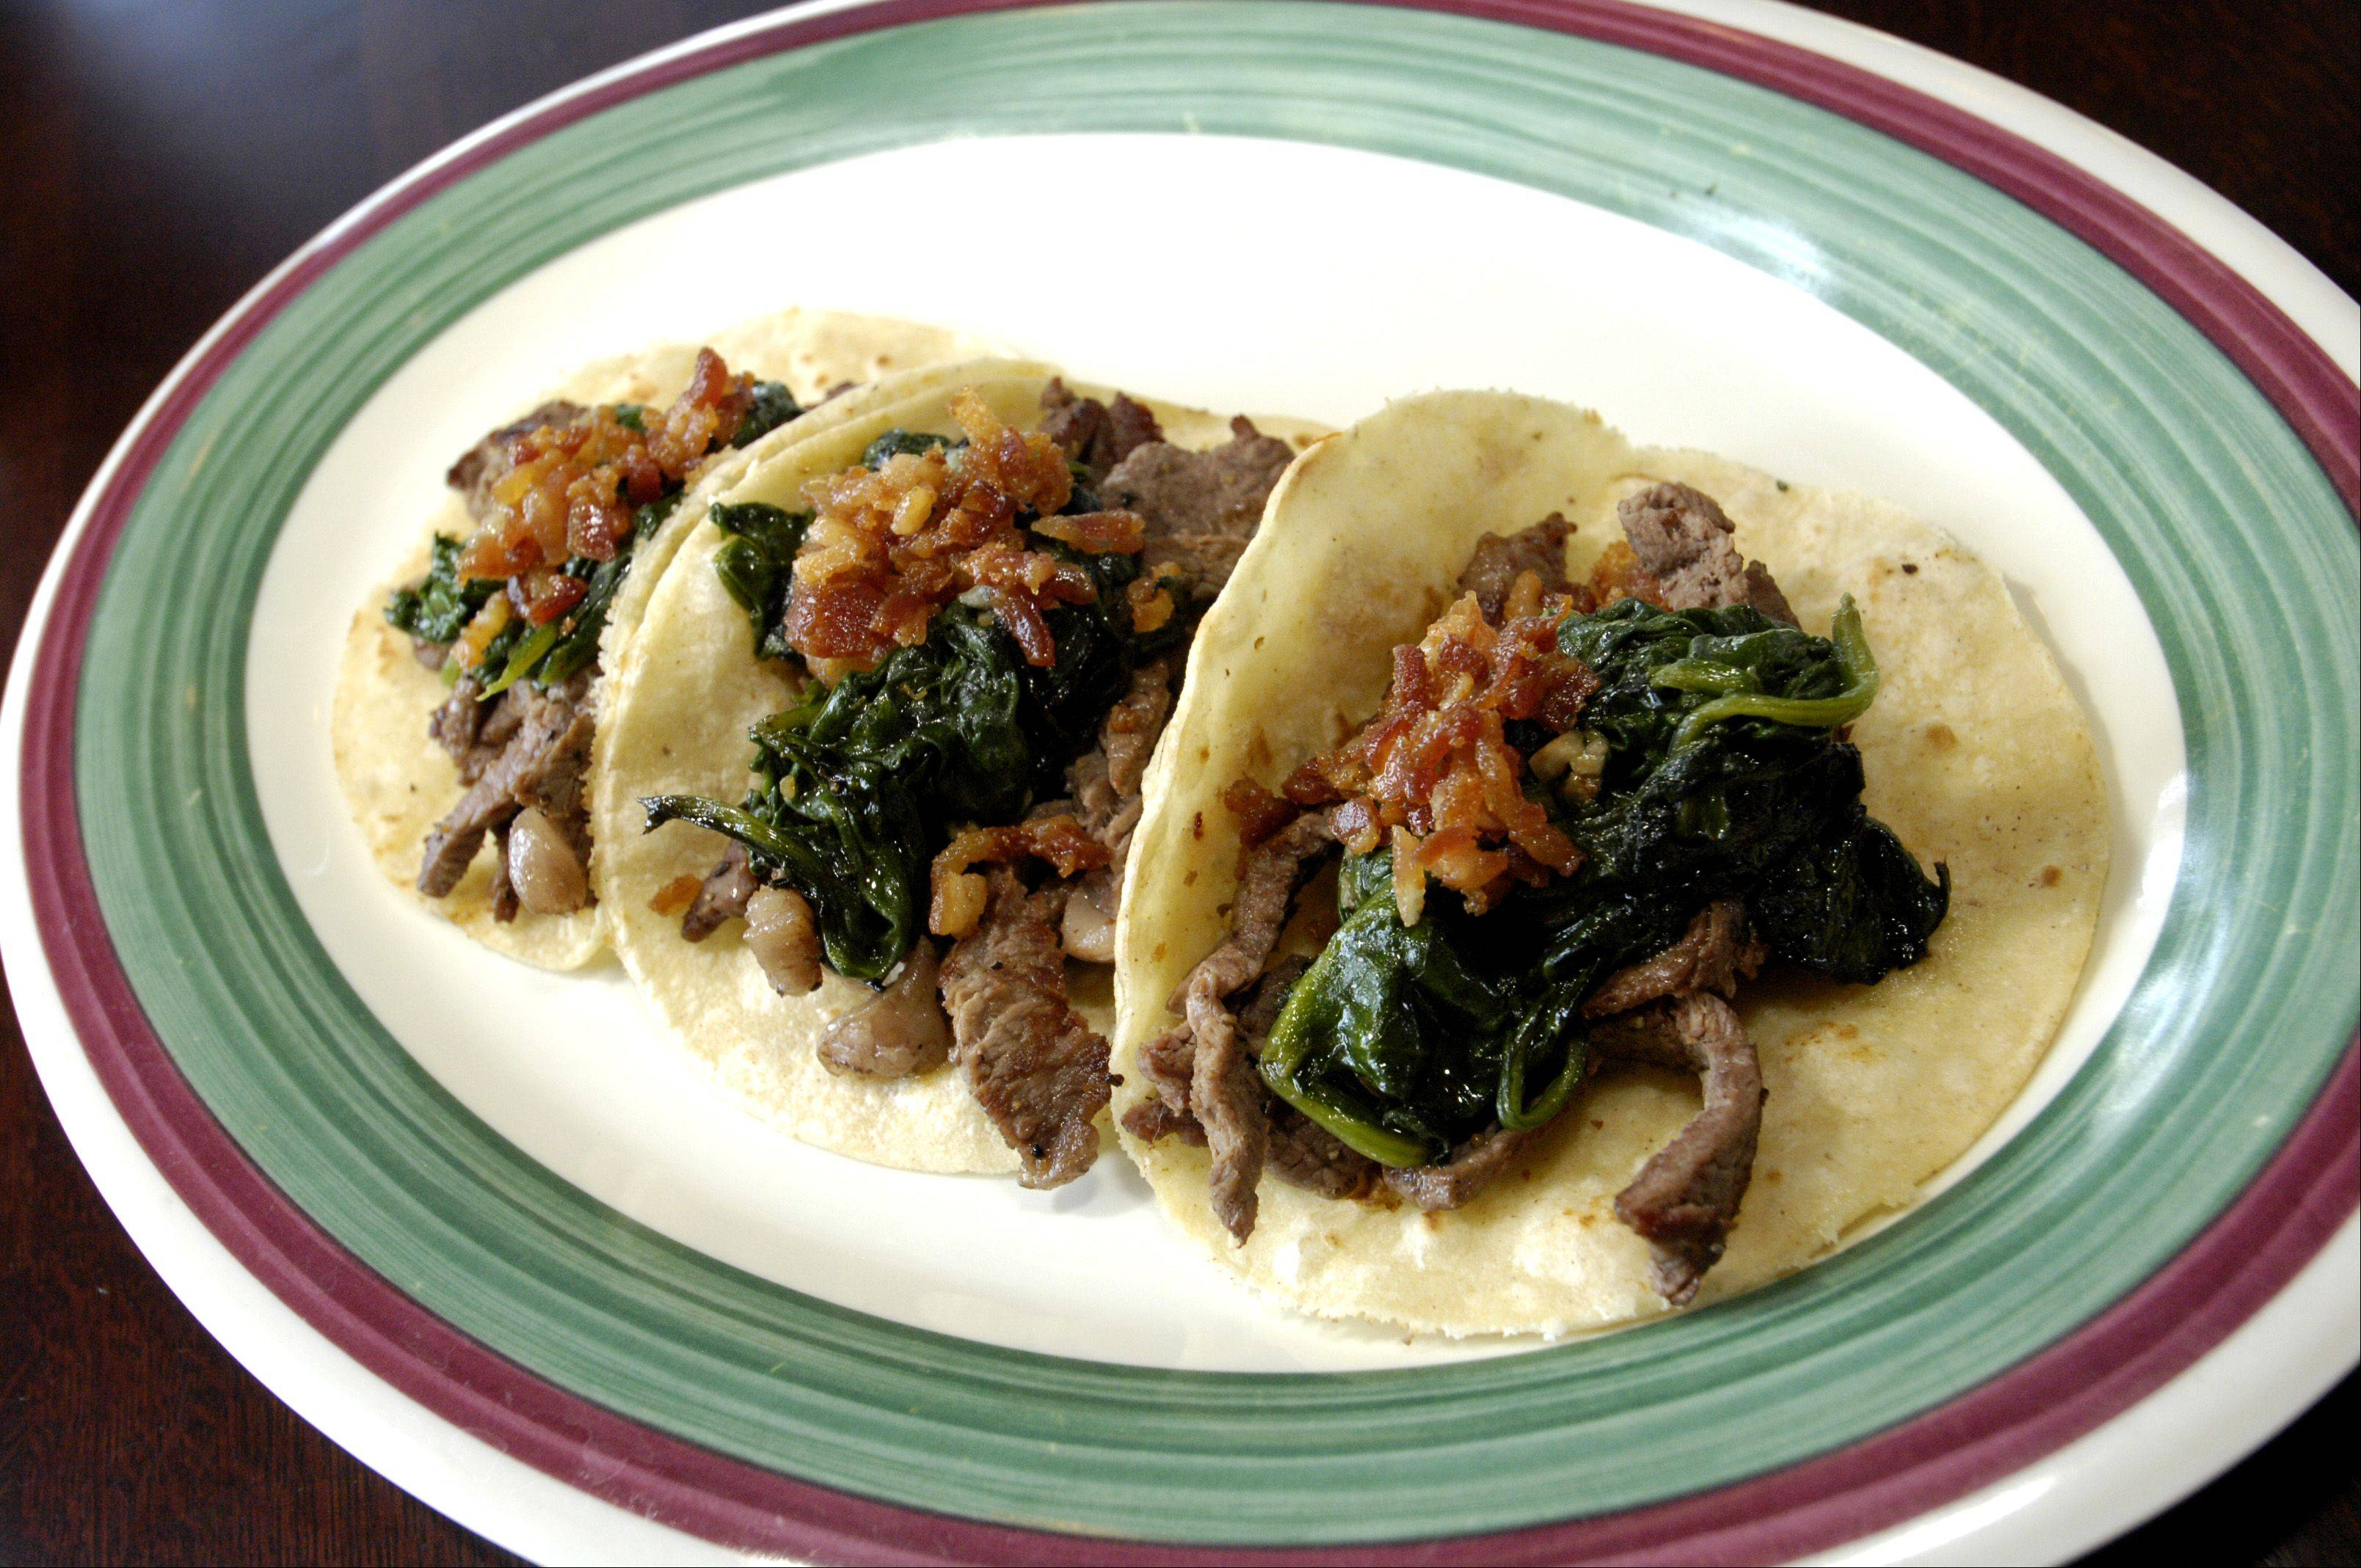 Changarro serves up picanha tacos at the West Chicago restaurant.